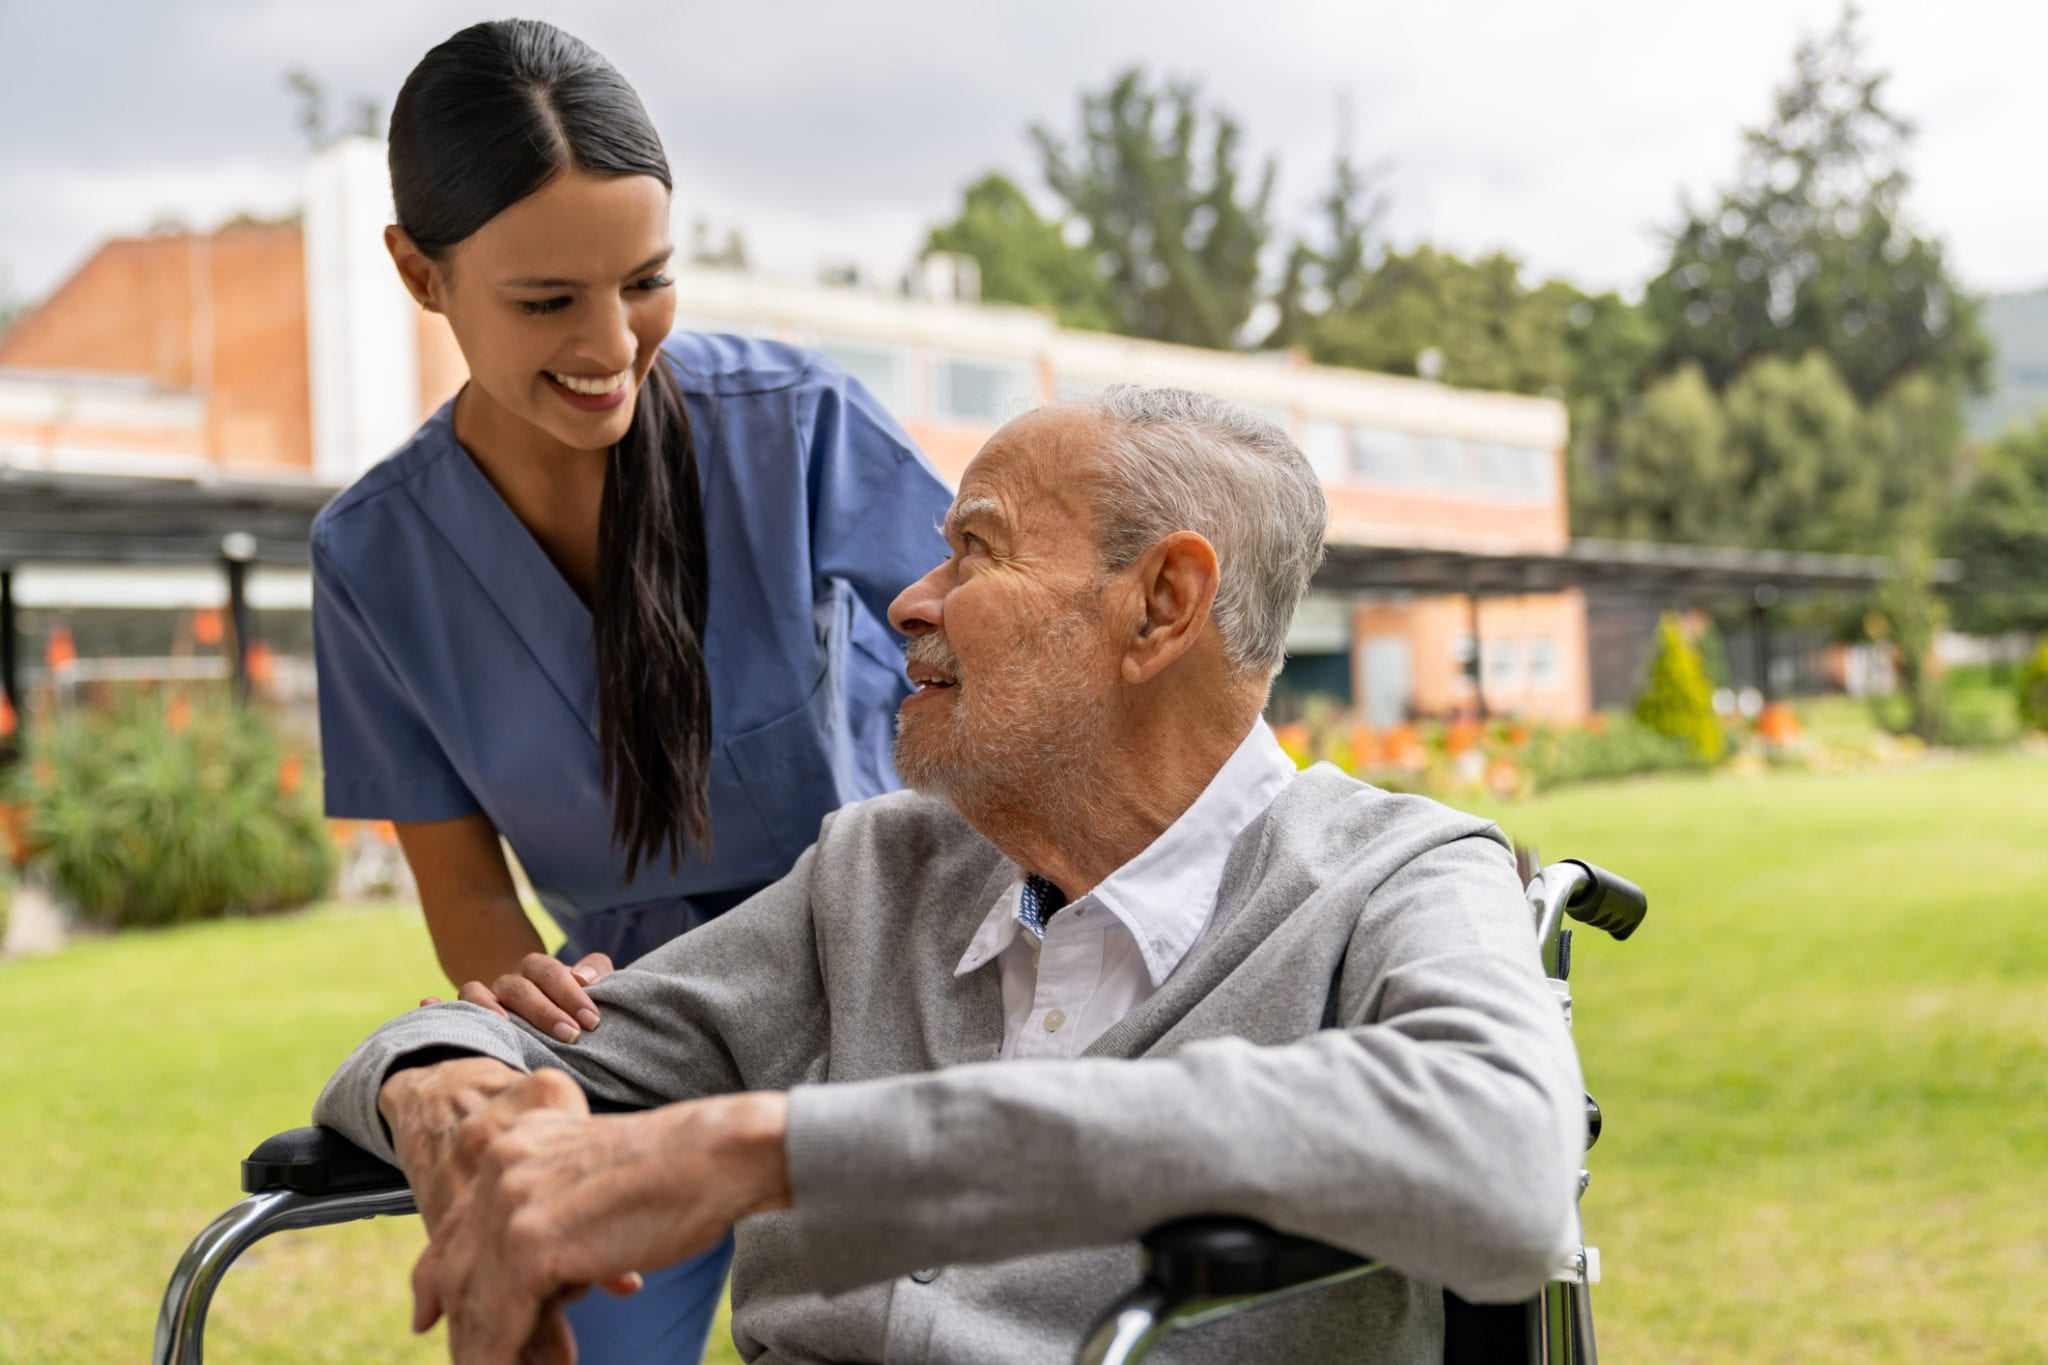 Hospice nurse with senior patient outdoors